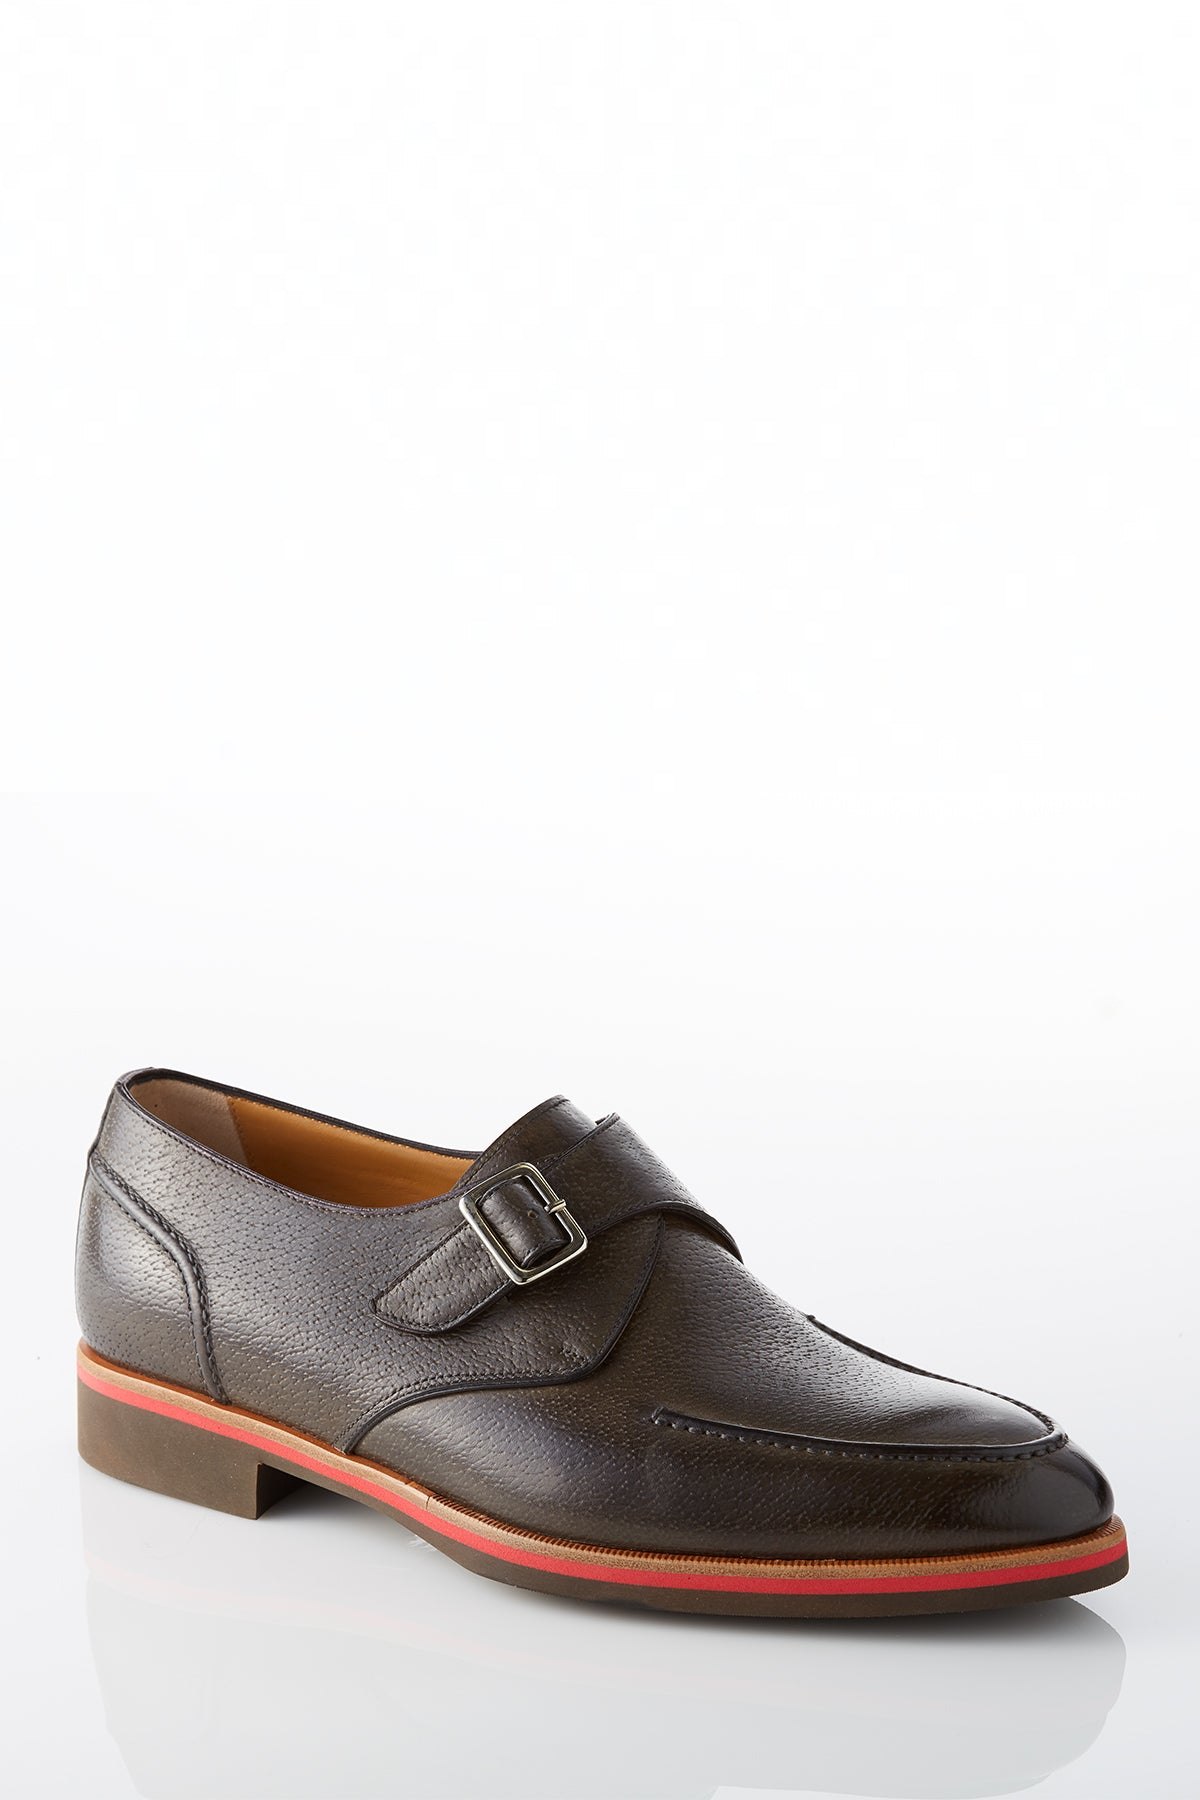 David August Leather Single Buckle Monk-strap Shoes in Graphite Grey Di Bianco